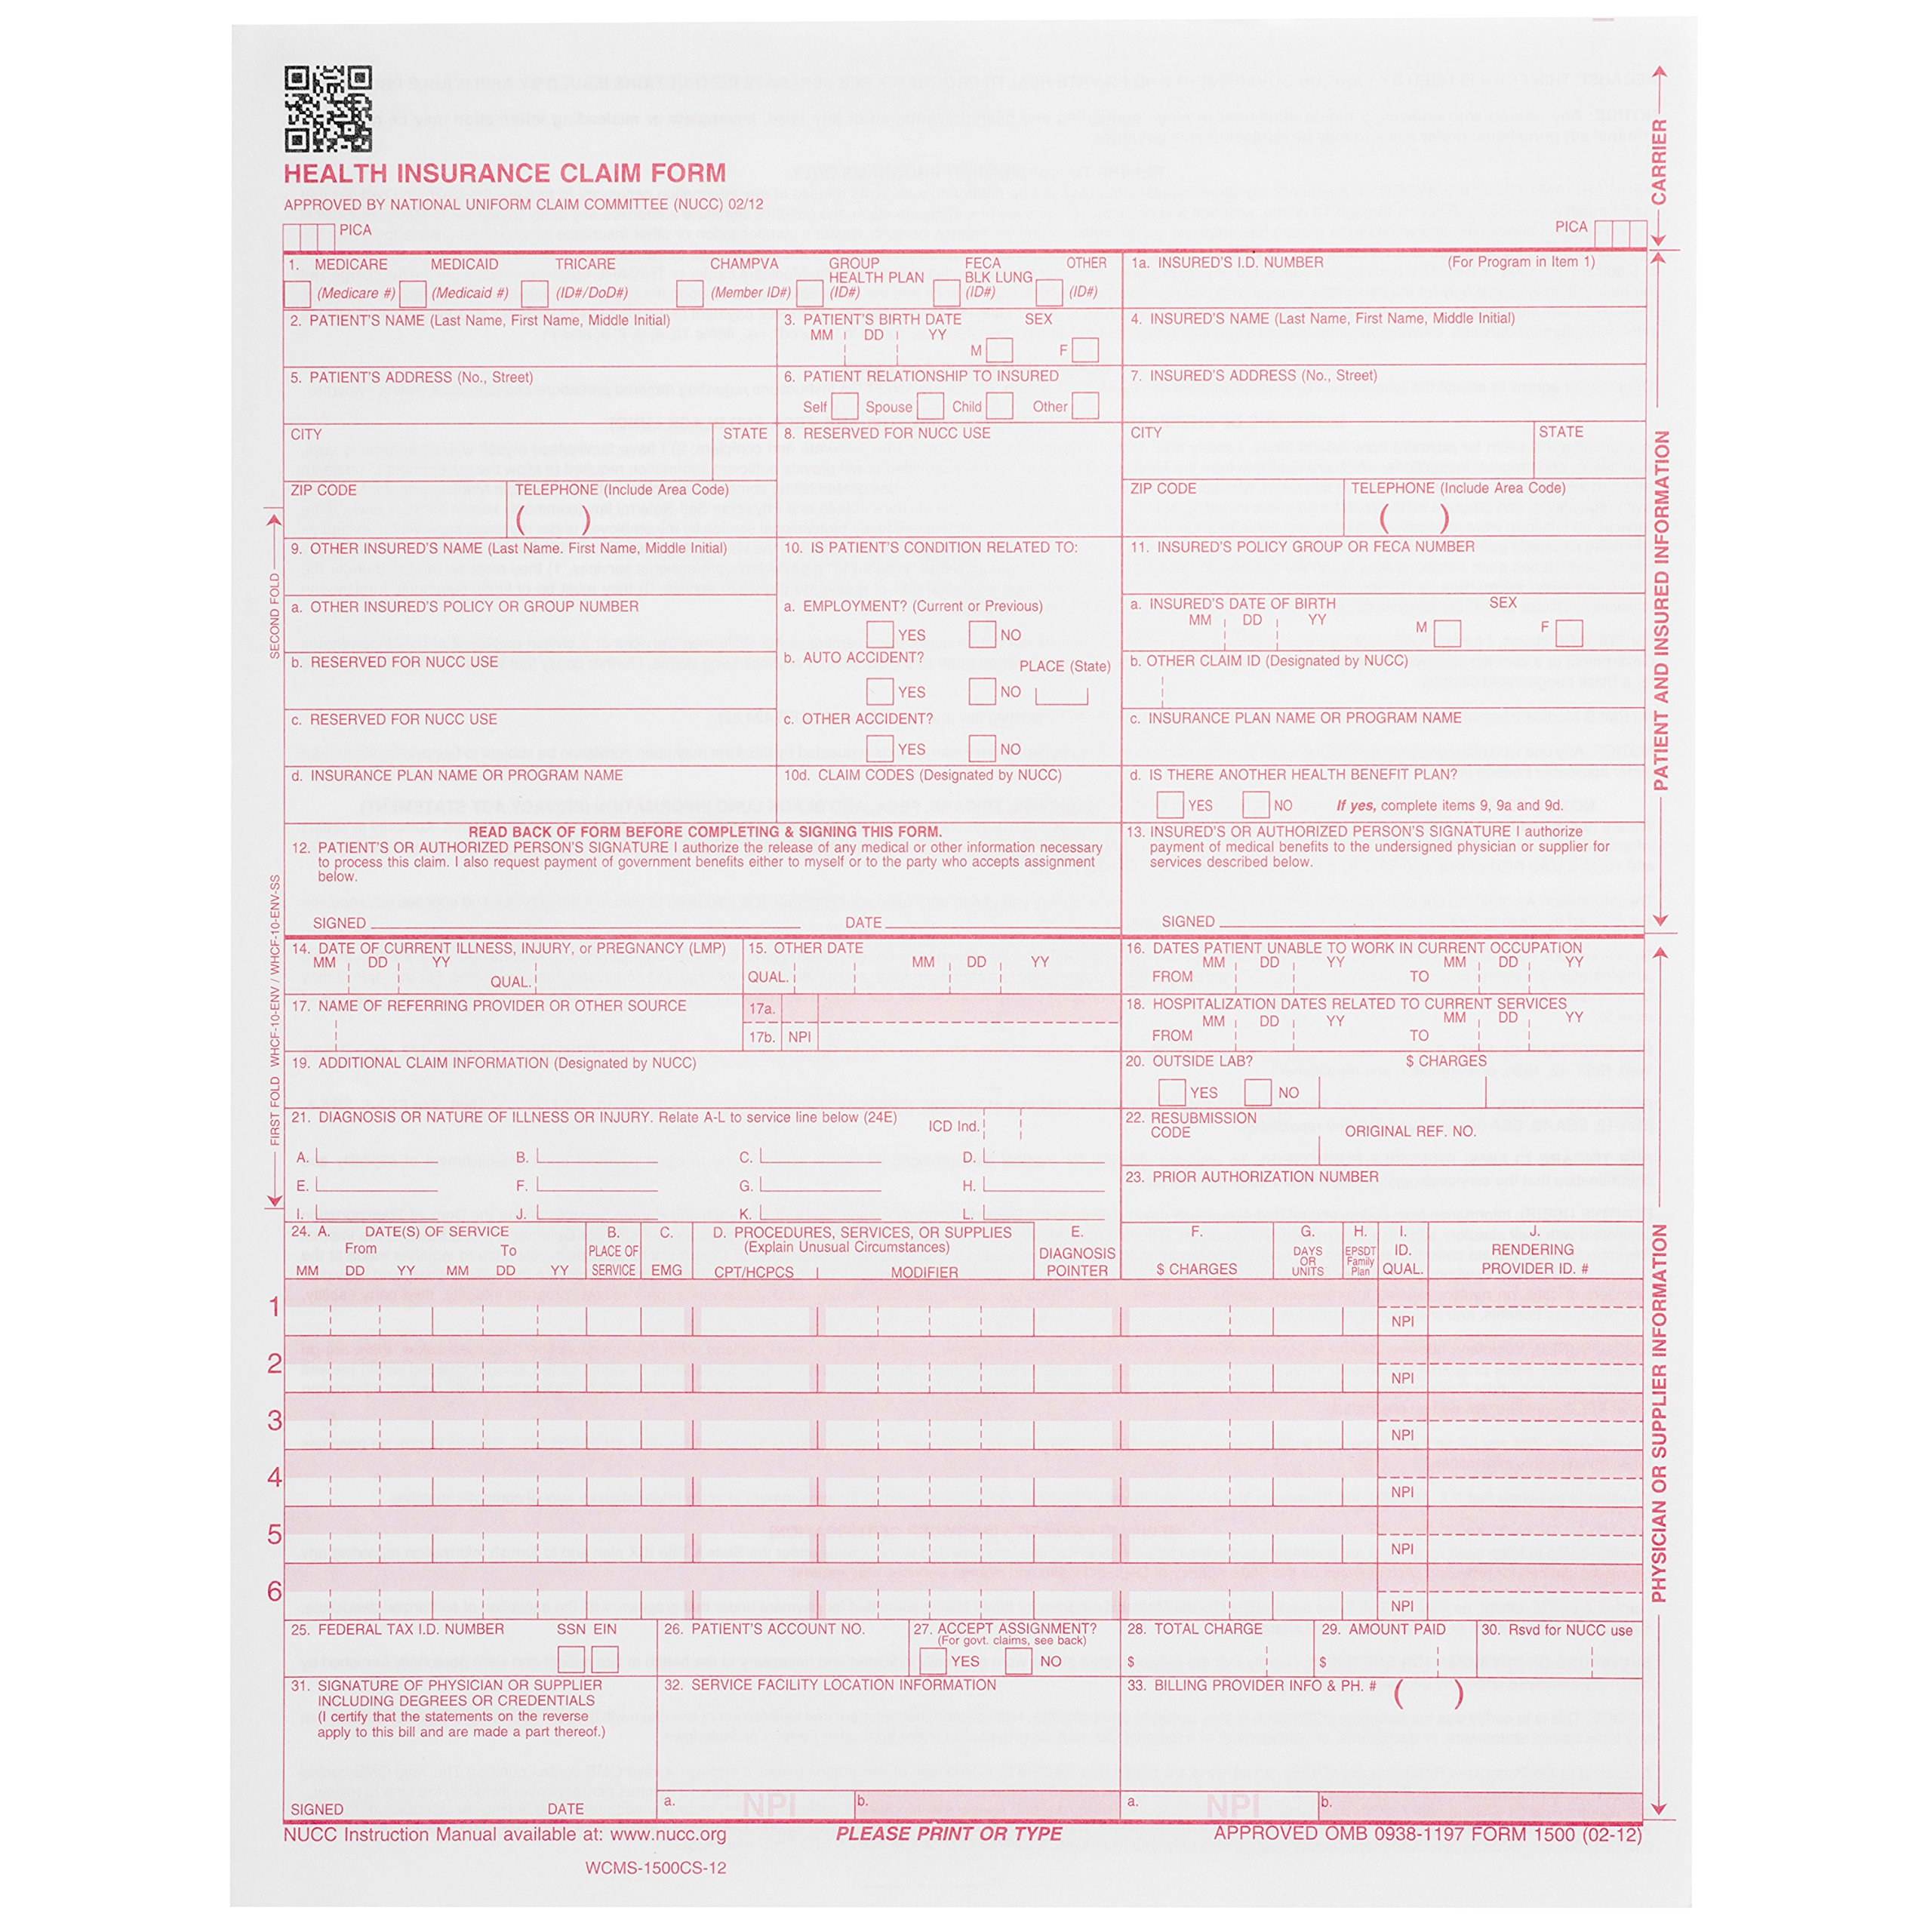 500 CMS-1500 Claim Forms - Current HCFA 02/2012 Version''New Version''- Forms Will line up with Billing Software and Laser Compatible- 500 Sheets - 8.5'' x 11 by Blue Summit Supplies (Image #2)